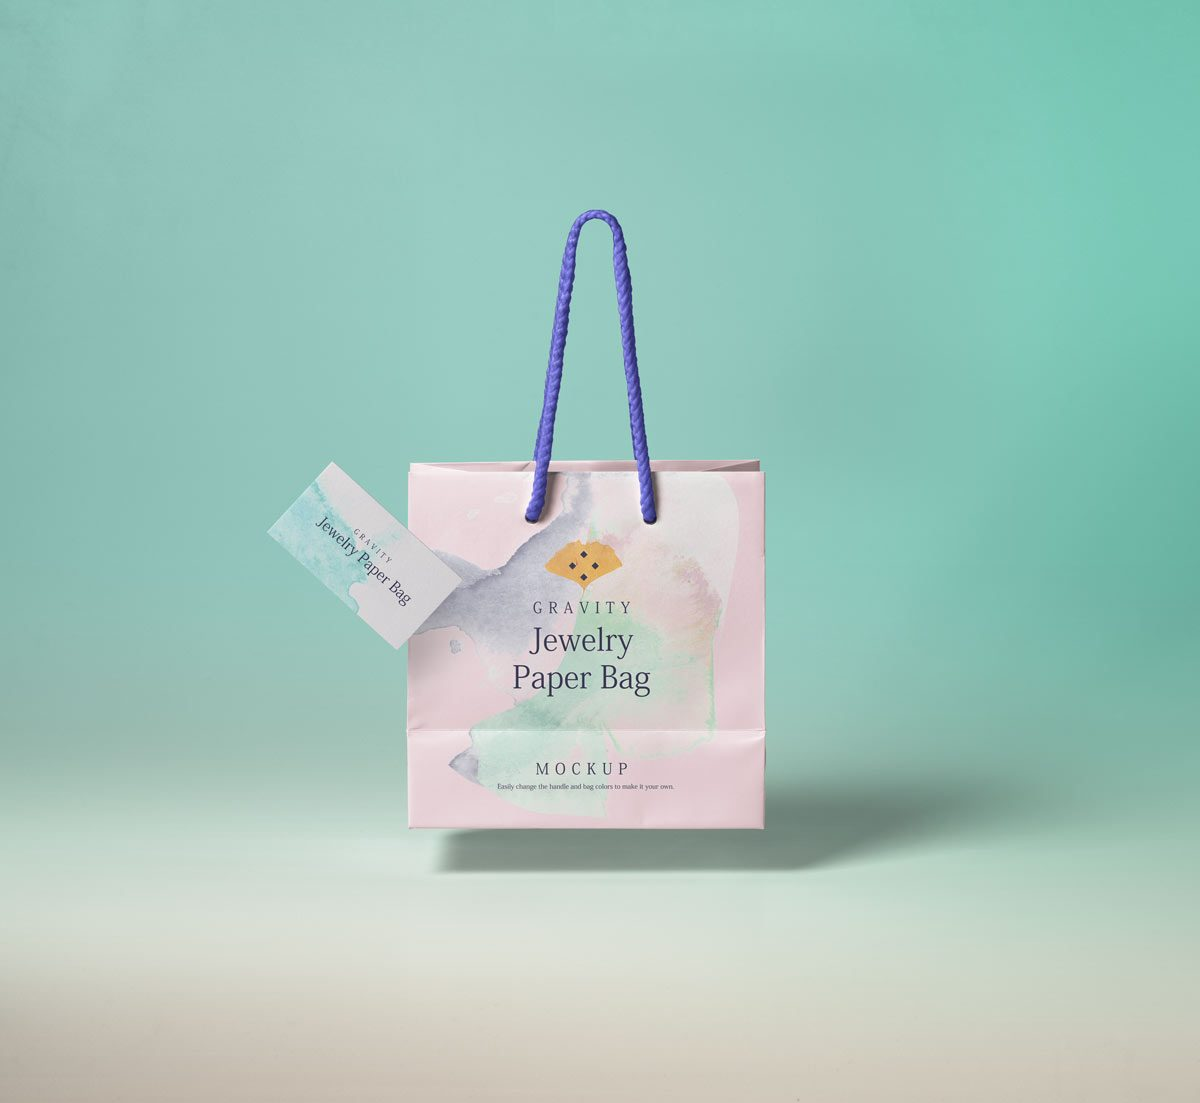 Gravity-Paper-Bag-Mockup-vol3